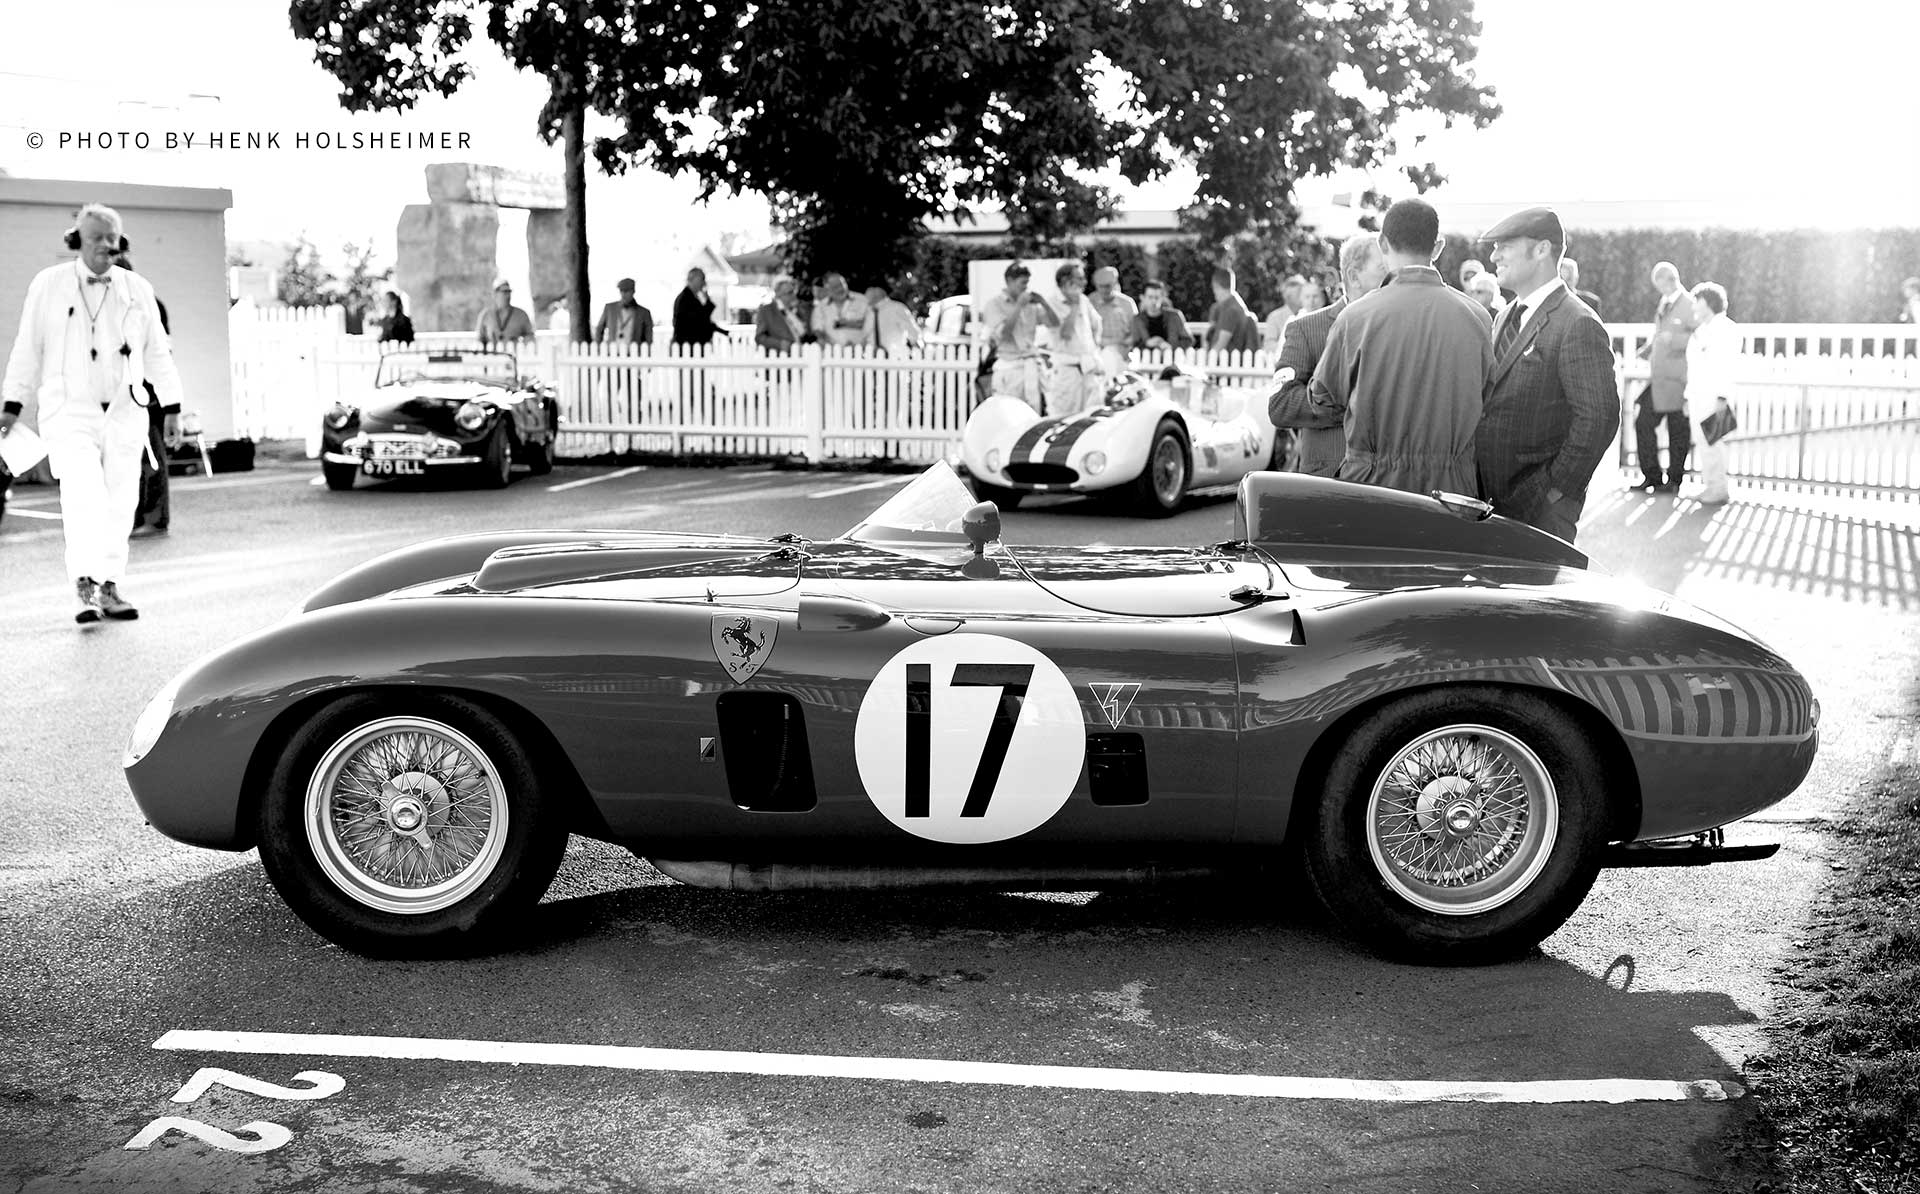 2014_Goodwood-Revival_14091205